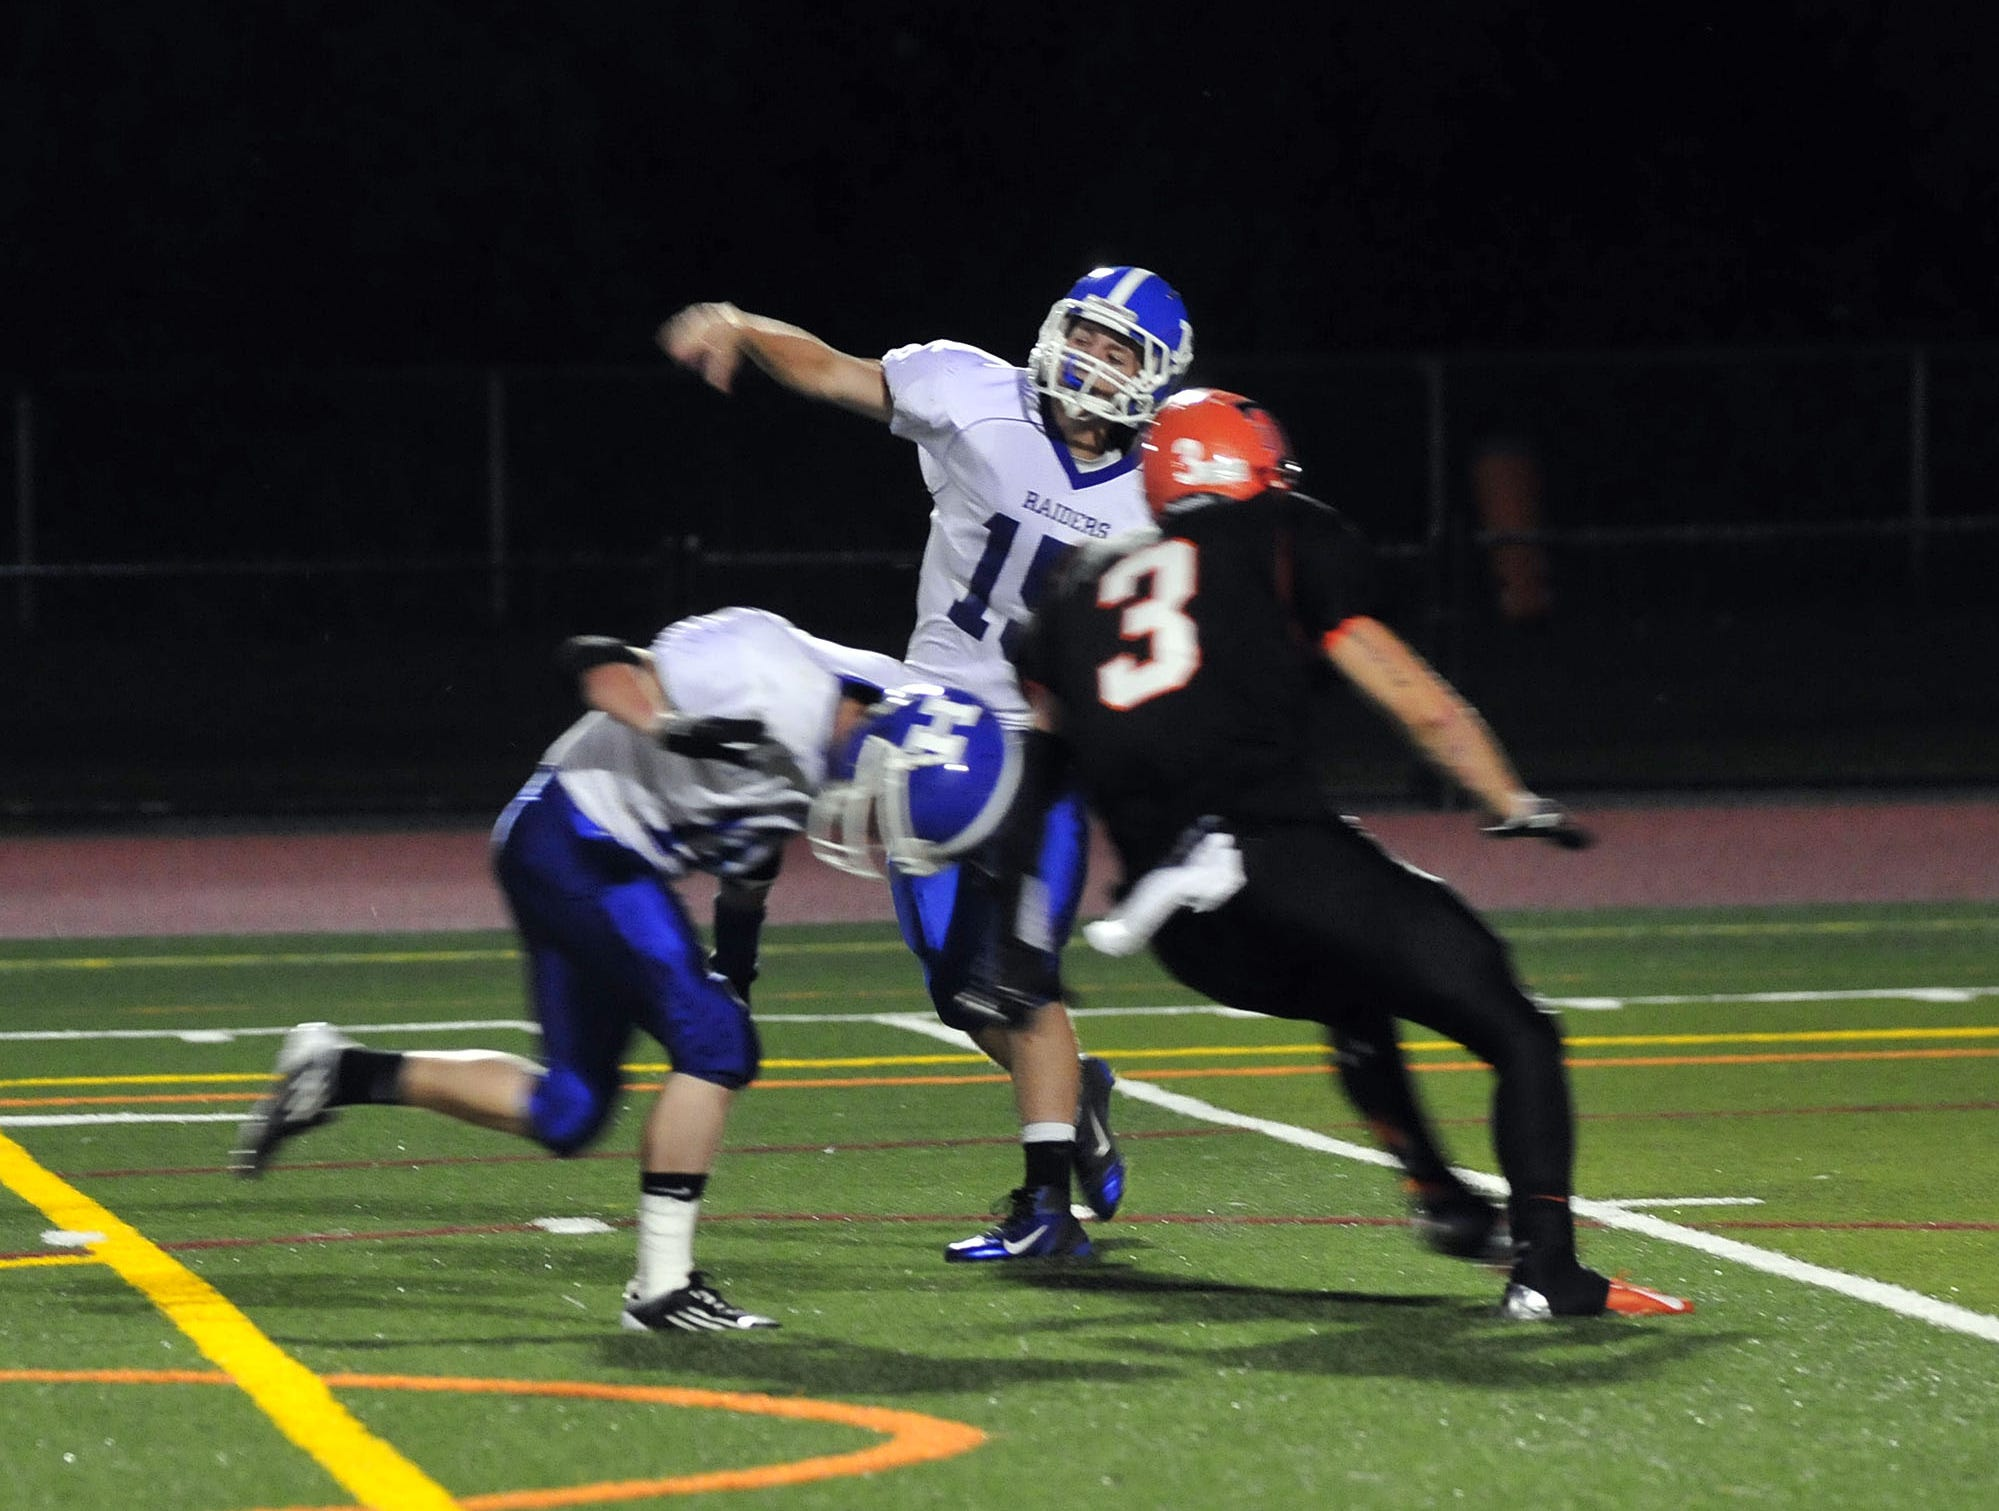 Horseheads quarterback Trevor Dickson attempts a pass before getting tackled by Union-Endicott's Caleb Scepaniak in 2012.